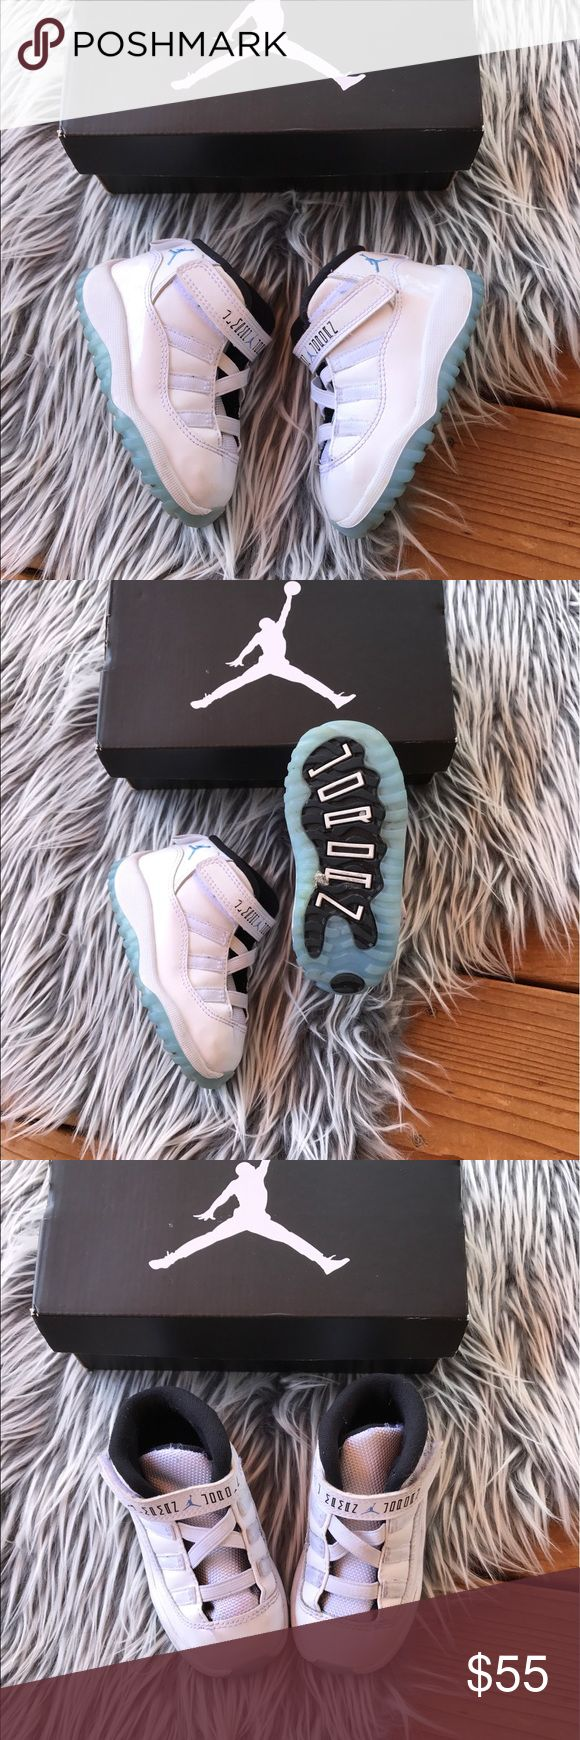 Toddler Jordan retro 11s 9/10 retro jordans 11 in legend blue, just needs a nice cleaning | ✨ Toddler Size 6C ✨ || will ship with box ✨ firm on price ✨ Jordan Shoes Sneakers